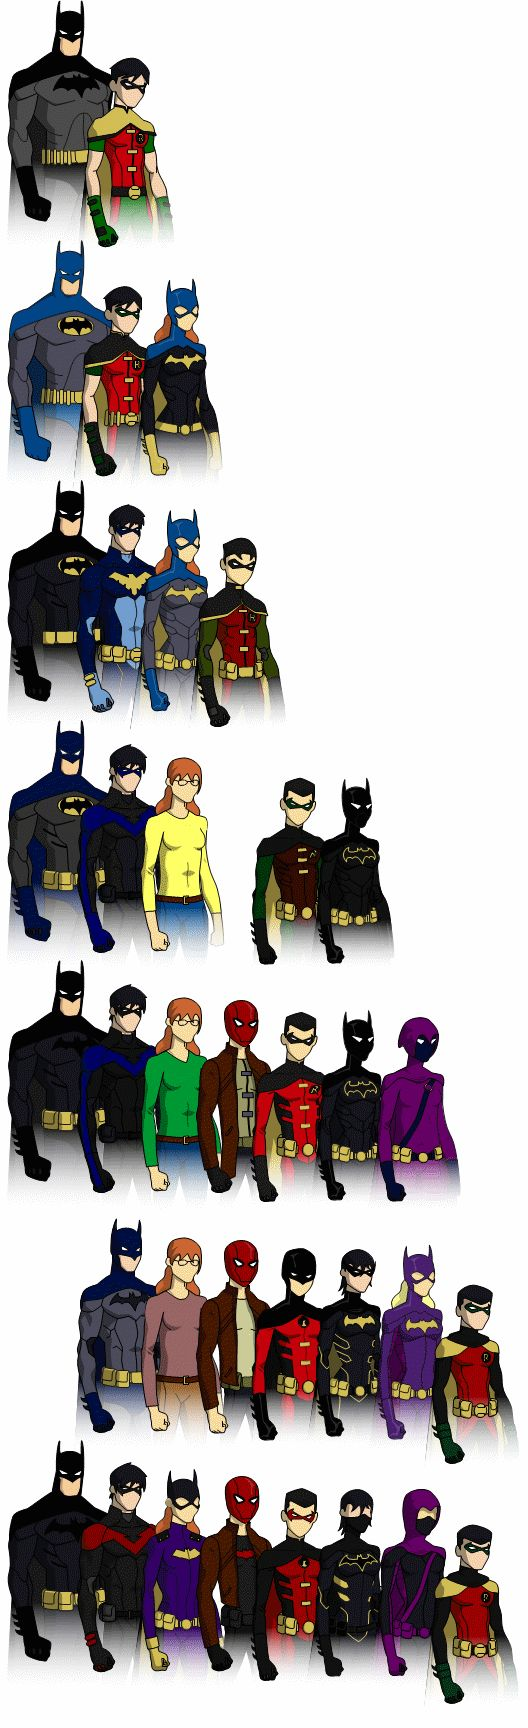 Batman Family by Arryc on DeviantArt - ooh, I'd like to draw my own version of this!